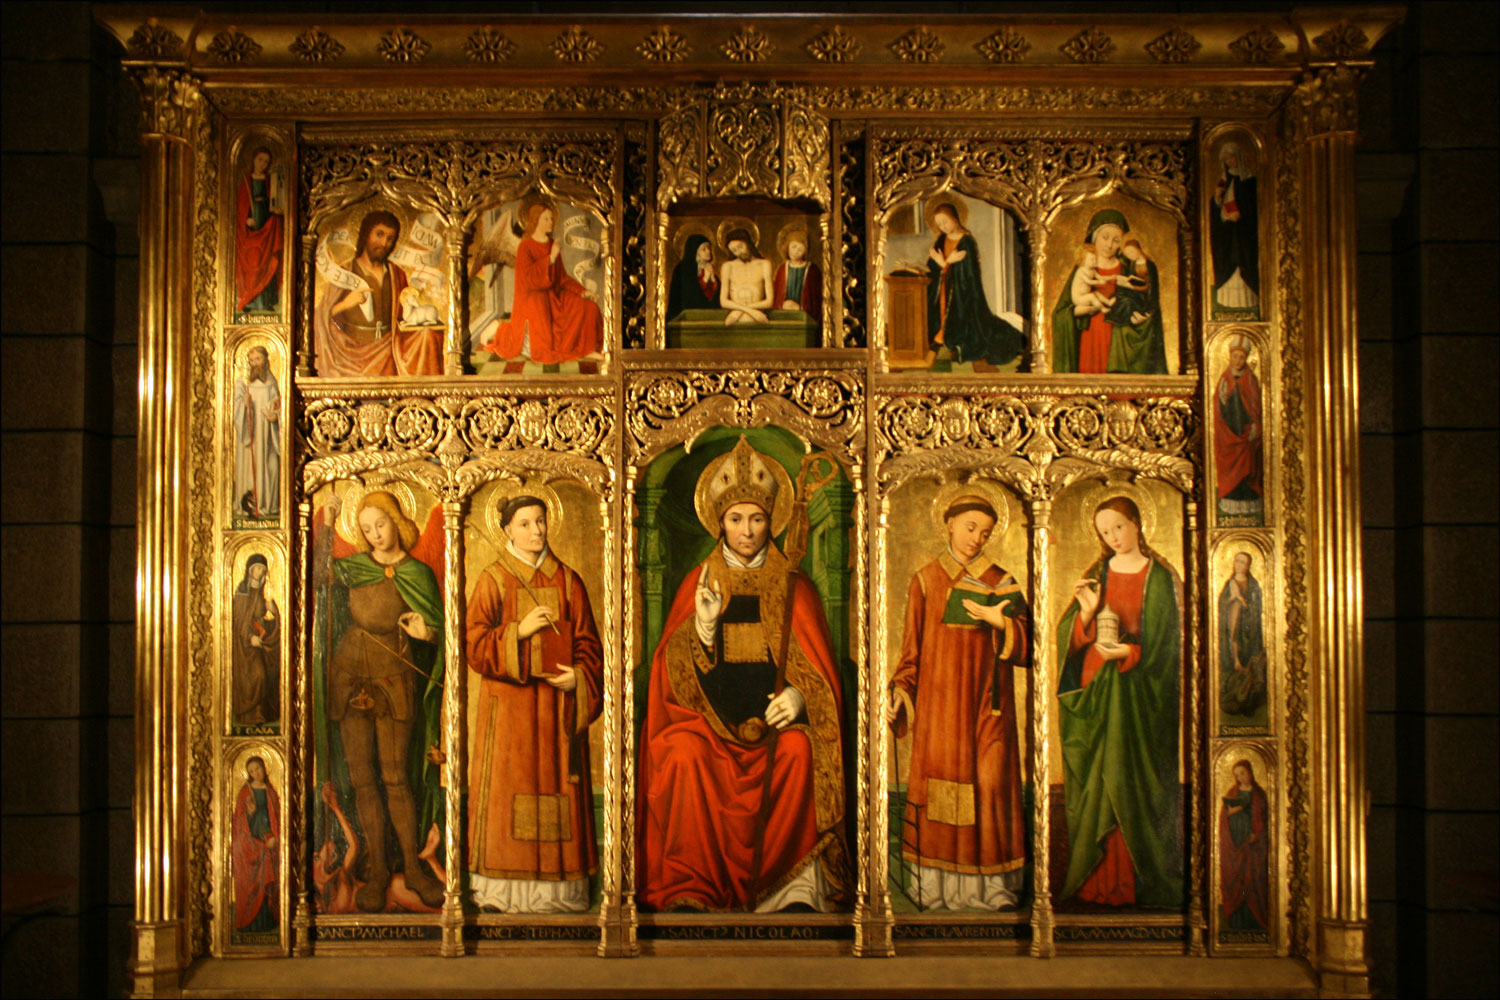 The Saint Nicholas Altarpiece